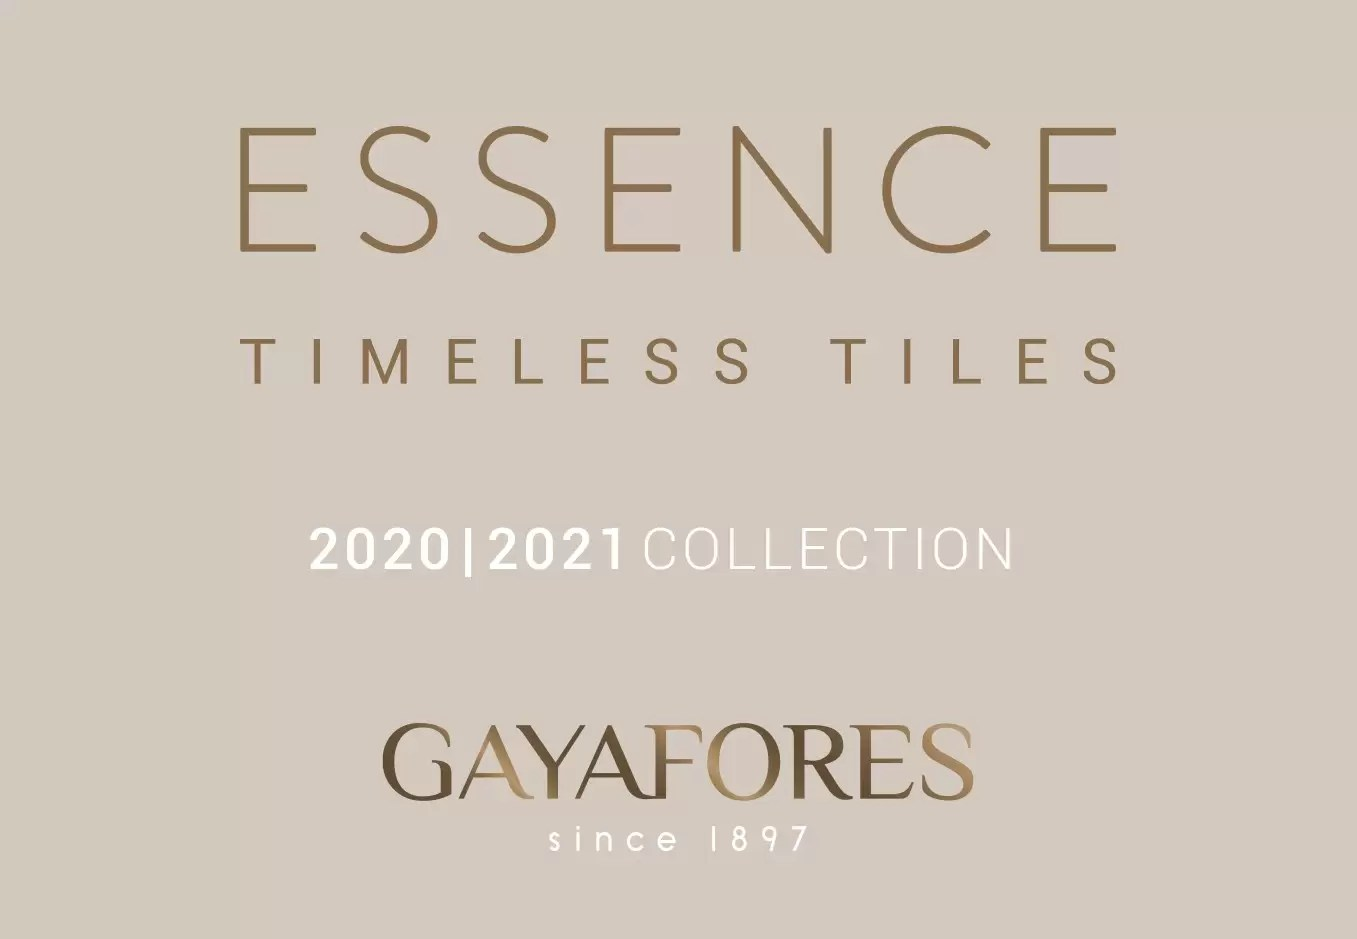 Gayafores New Collection Catalog 2020 2021